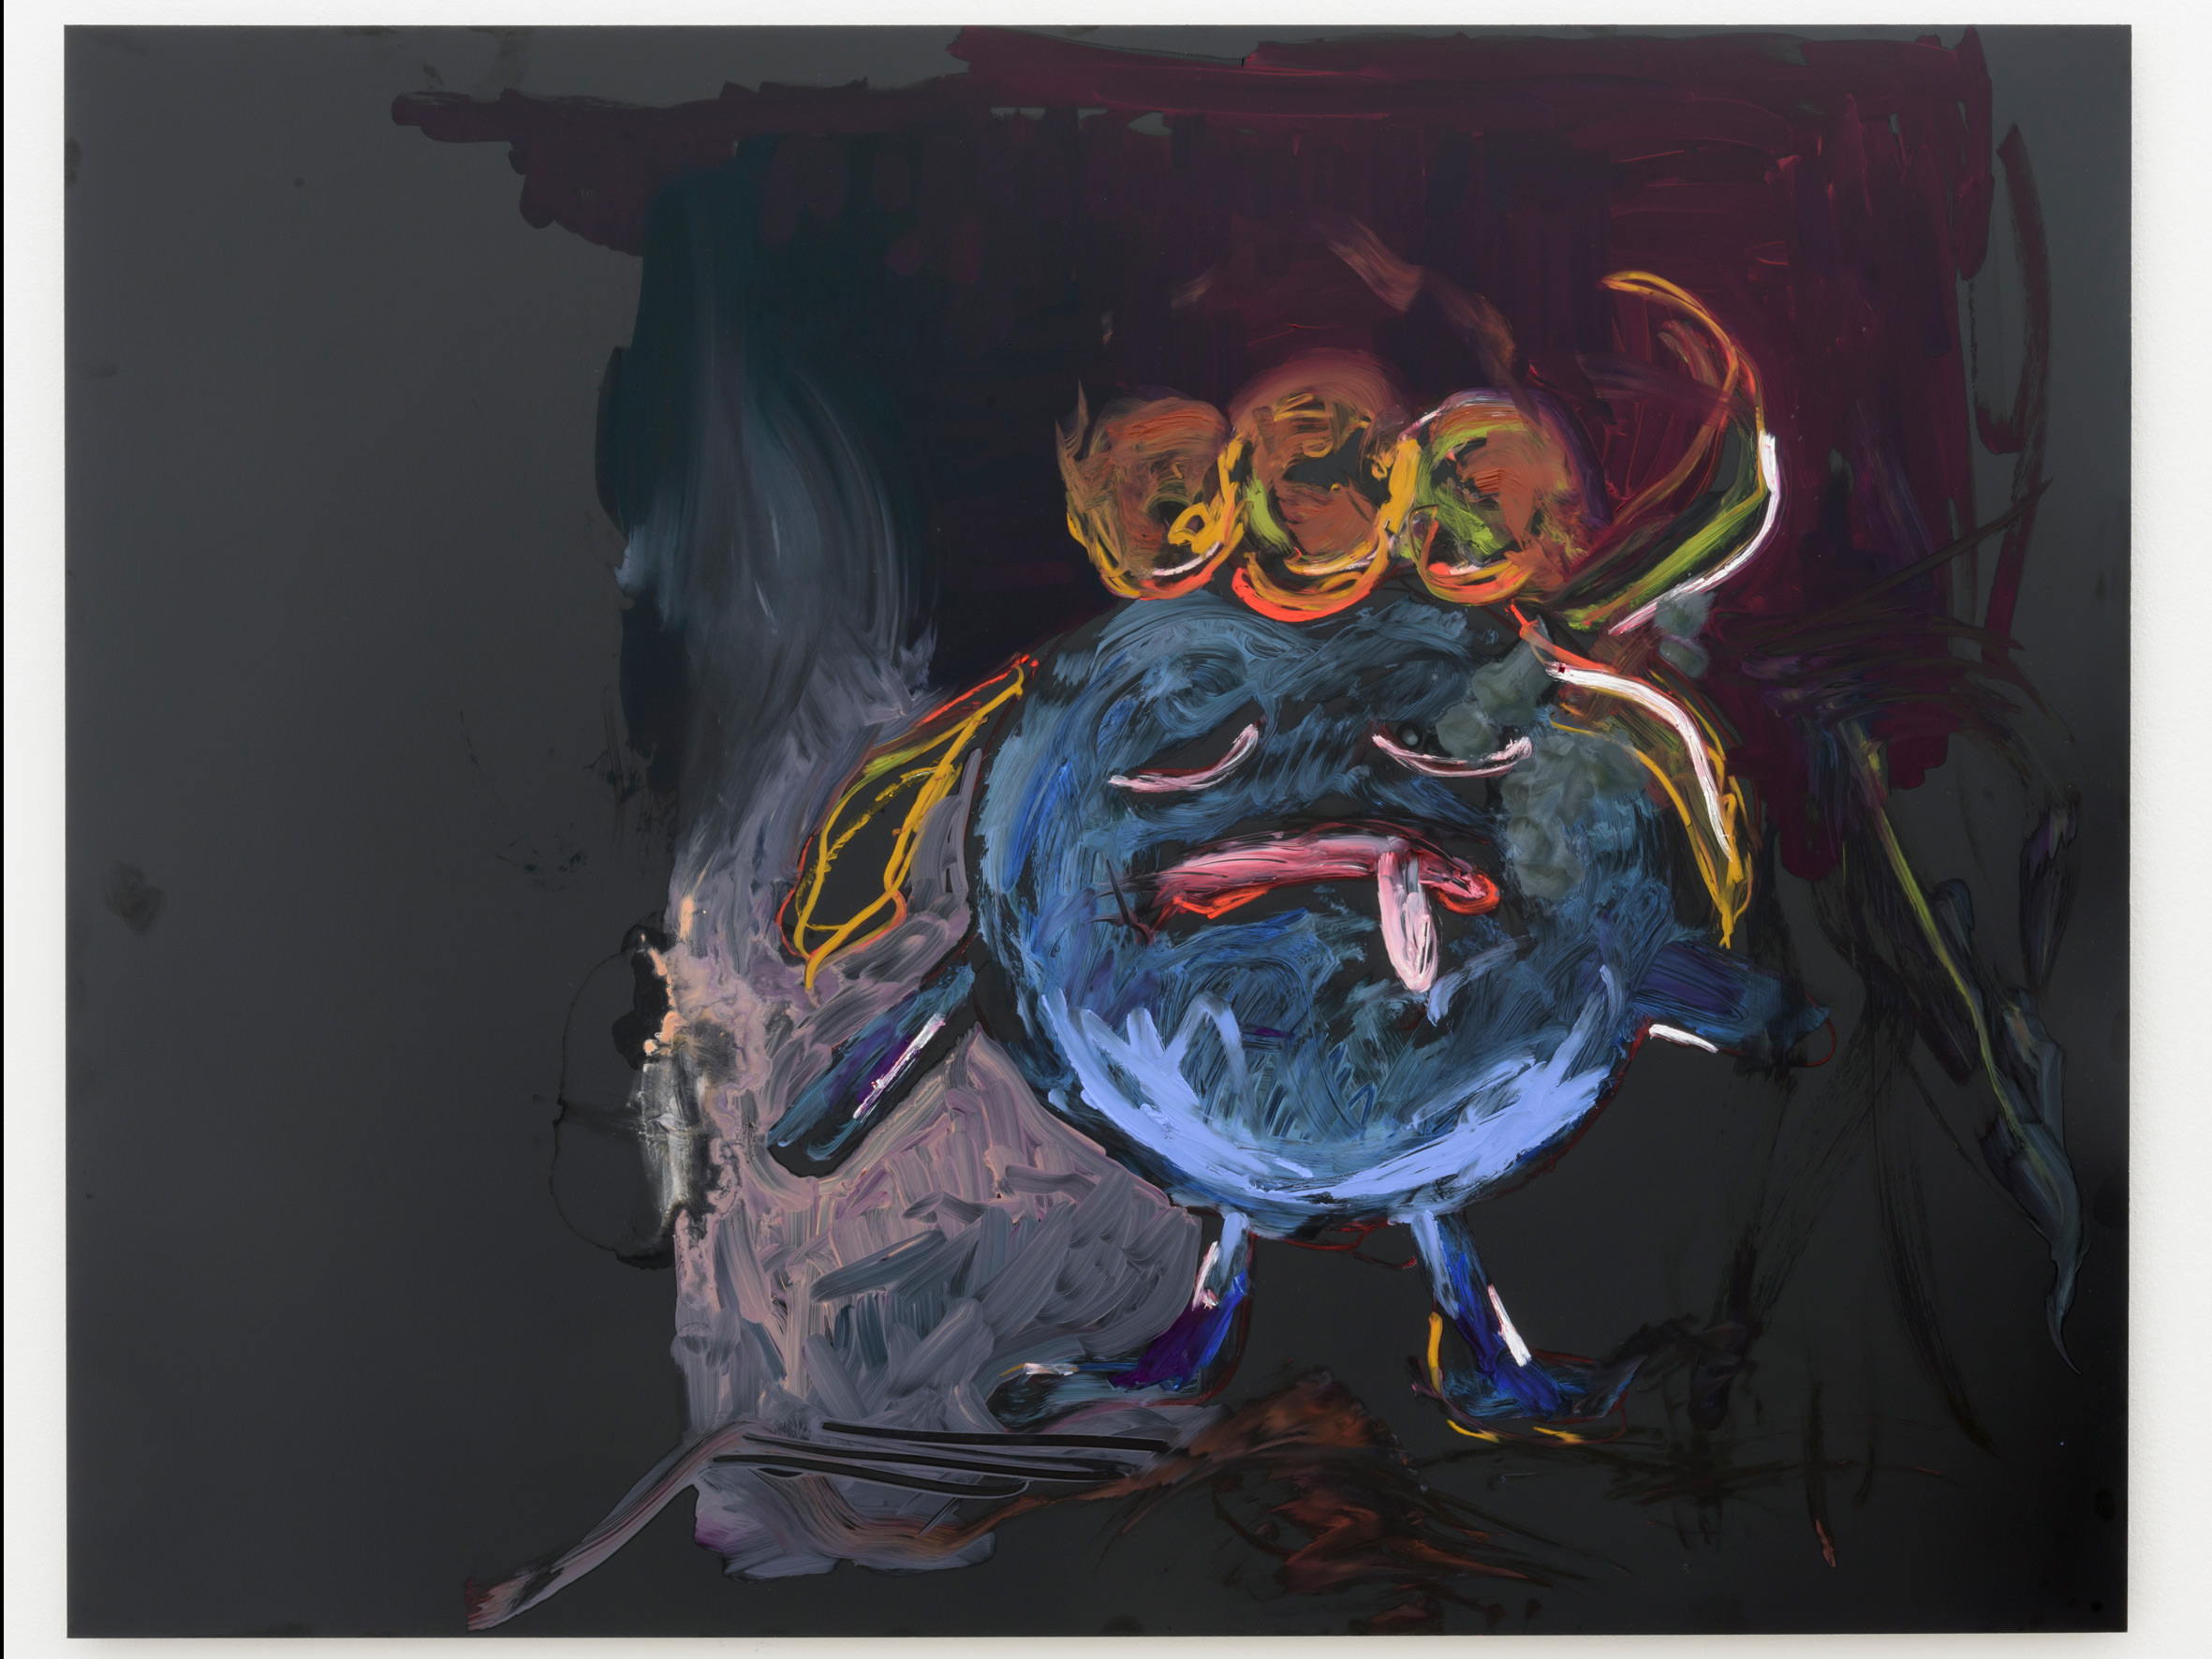 """Reena Spaulings,Gloom(2016).Oil painting onDibond.100 x 130 cm. Courtesy of the artist and Galerie Chantal Crousel, Paris PhotoFlorian Kleinefenn  At the Chantal Crousel Gallery, there's no need for an iPhone or augmented reality to go Pokémon hunting: the Nintendo creatures are painted and hanging on the walls. These oils on Dibond (aluminium and polyethylene) are by Reena Spaulings. A fictional character conceived by the artistic collective Bernadette Corporation, Reena Spaulings signs tangible works. She even gave her name to a New York gallery in 2004 (Reena Spaulings Fine Arts). She embodies above all an era where the virtual and the fictional (and its characters) often count more than reality. So it's no surprise the artist is interested in her fellow imaginary beings, Pokémon, the creatures that pop up on streets all over the world.   What ifartists picked up their subjects depending on Twitter """"trend topics"""" ?"""